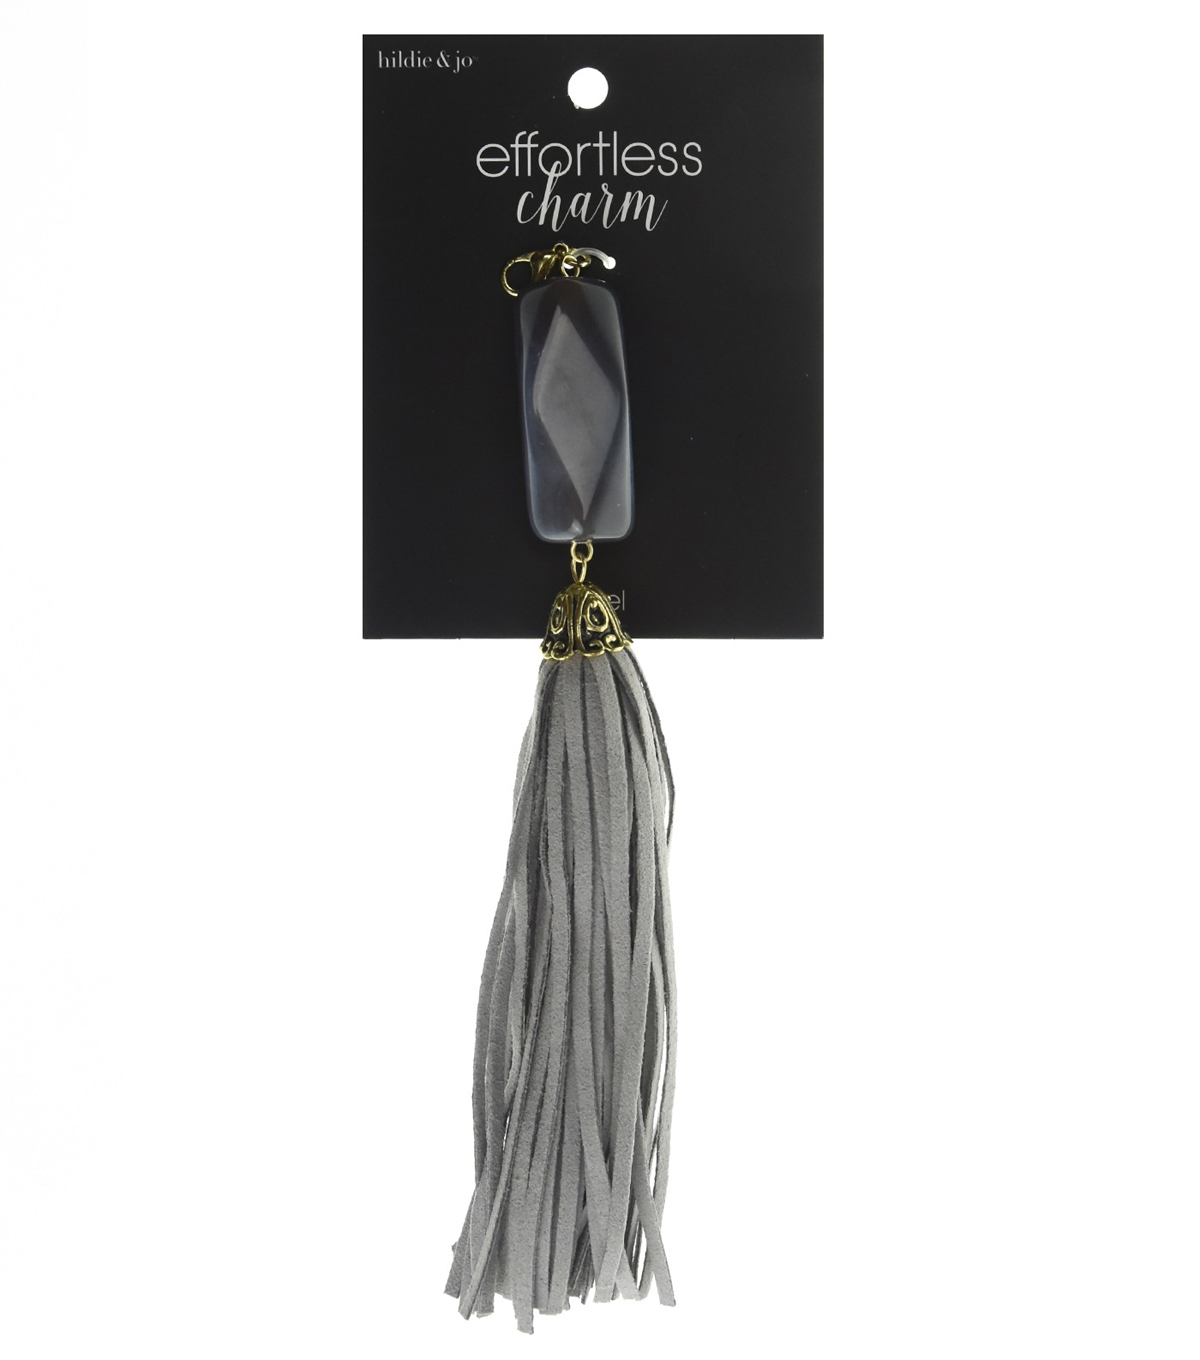 hildie & jo Effortless Charm Stone Tassel-Gray